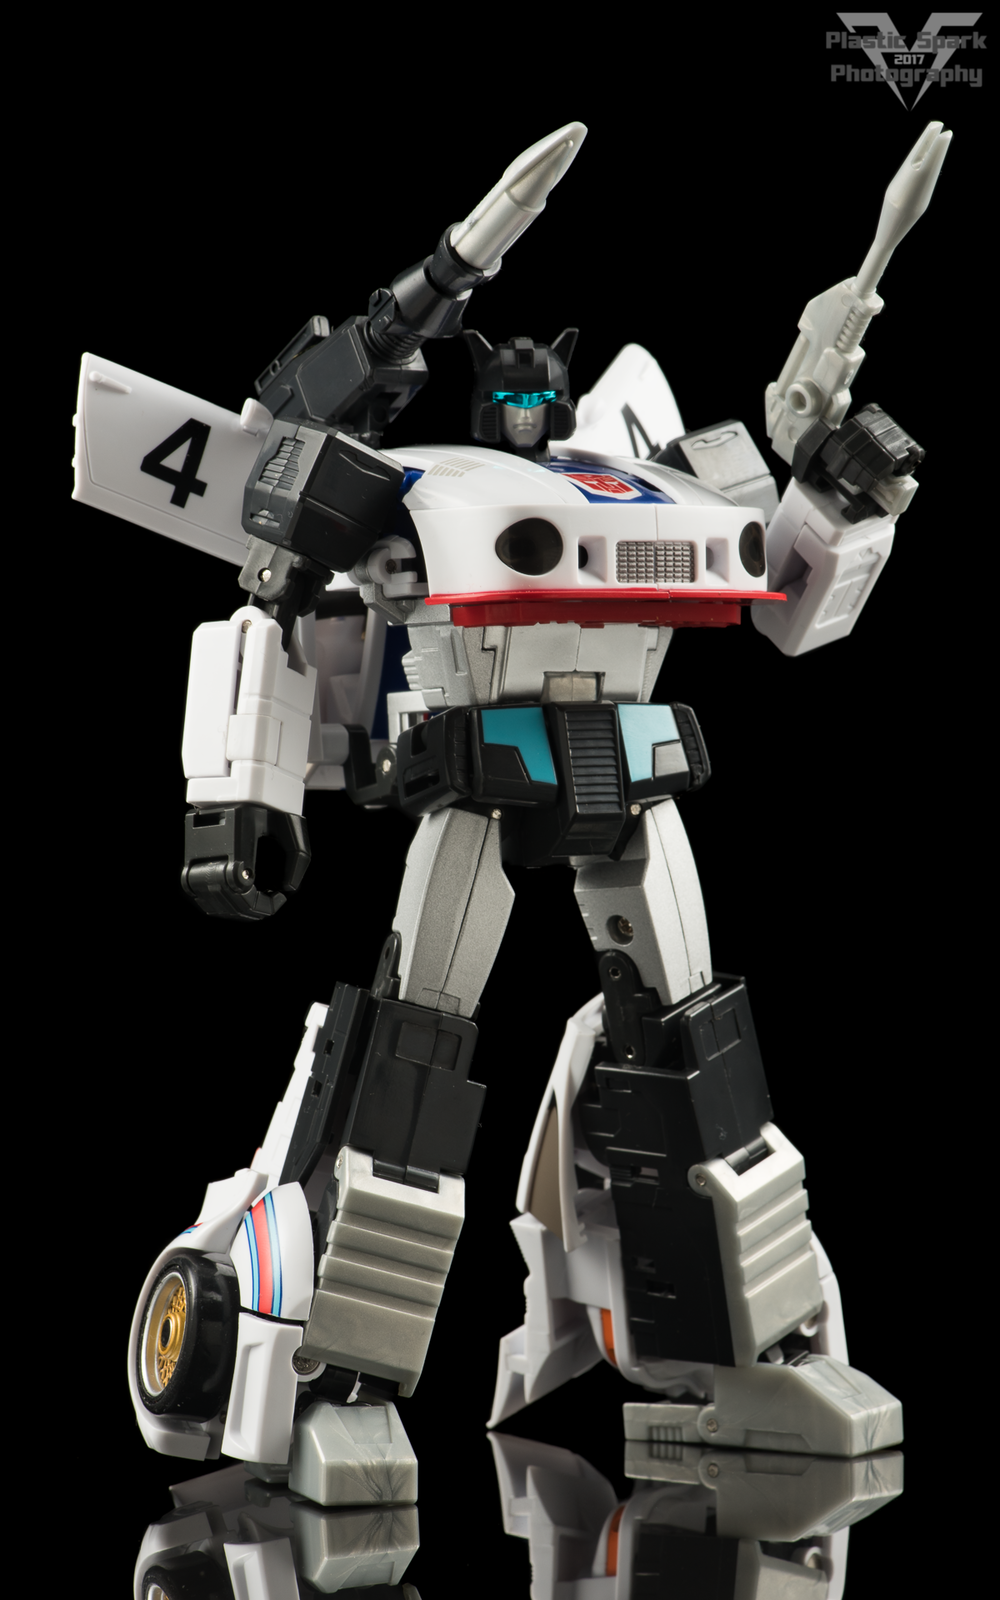 MakeToys-Re-Master-MTRM-09-Downbeat--(2-of-42).png